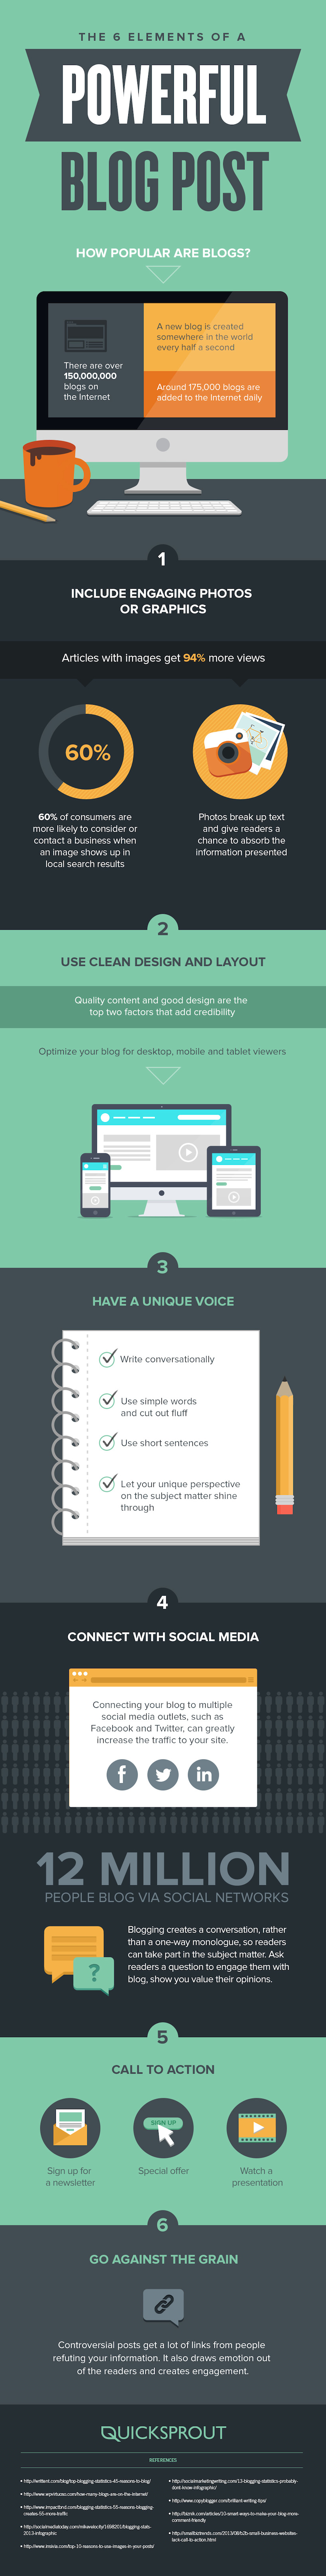 Infographic: 6 Elements of a Powerful Blog Post